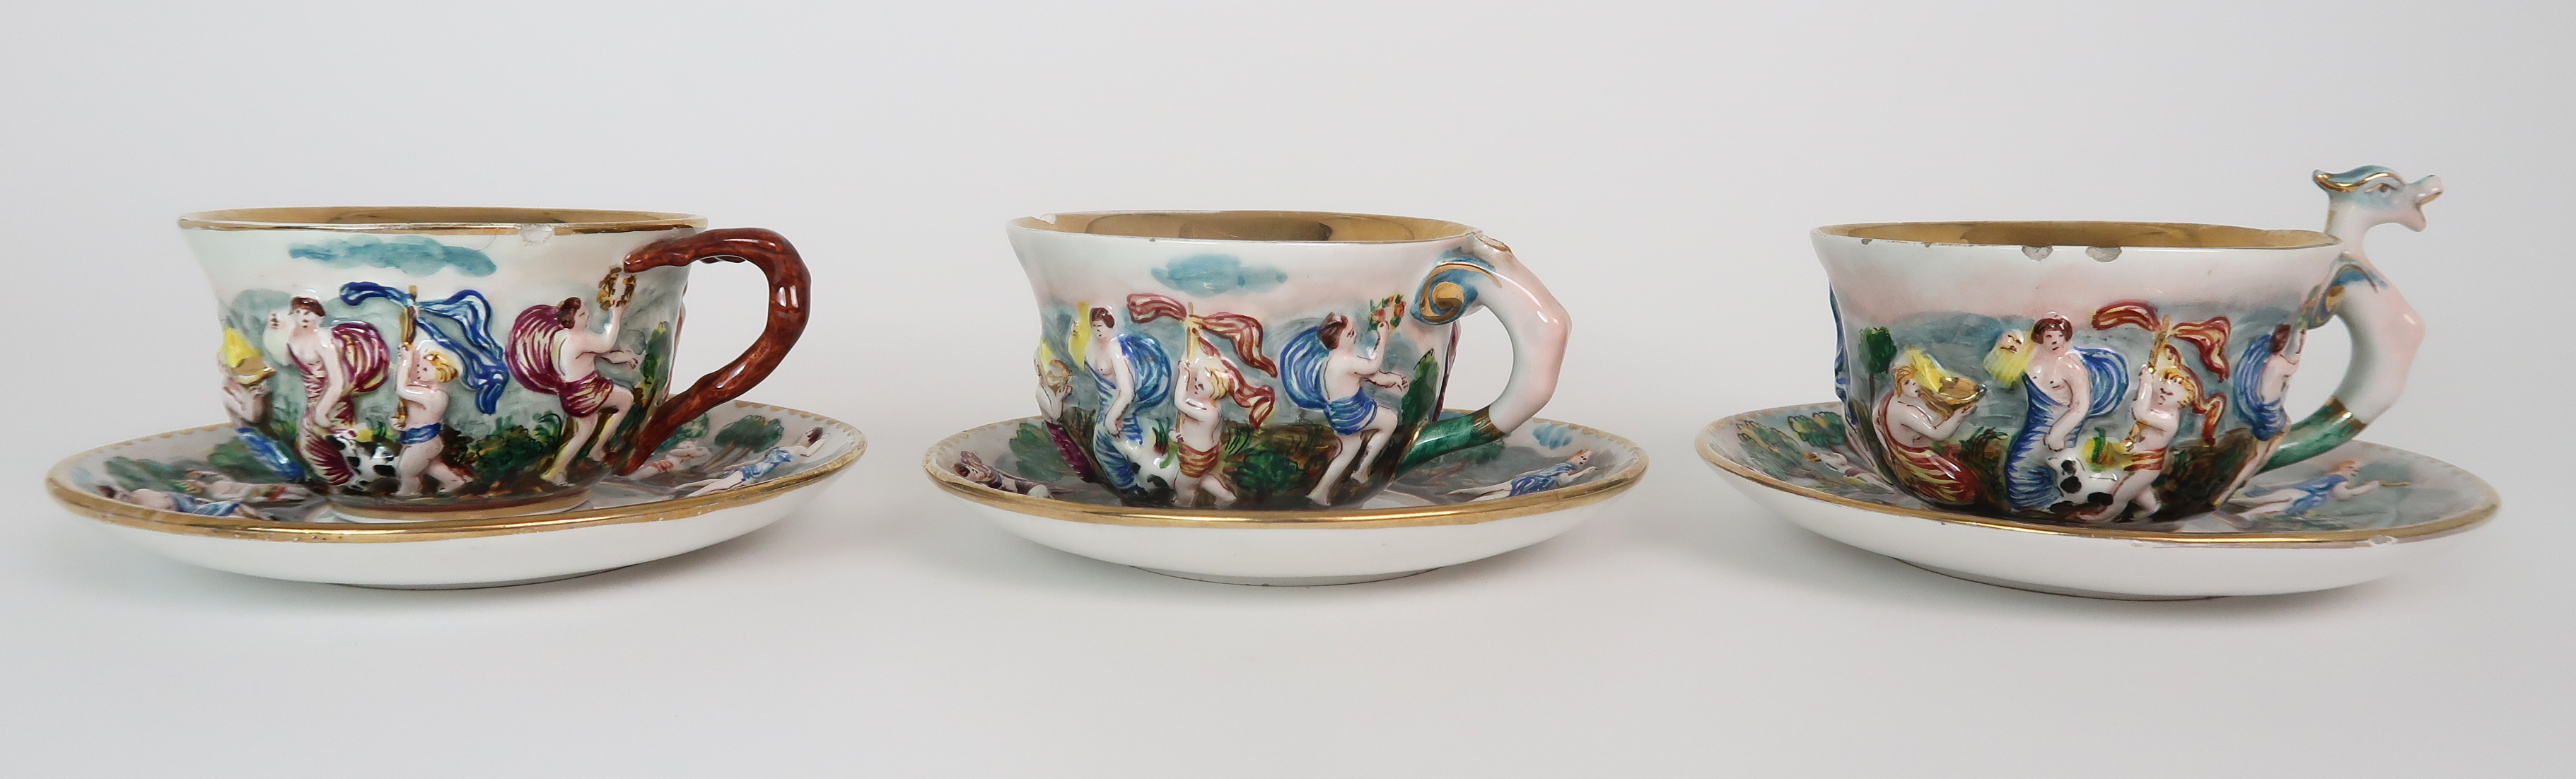 THREE CAPODIMONTE CUPS AND SAUCERS decorated with bacchanalian scenes, a pair of Sevres pots - Image 2 of 16